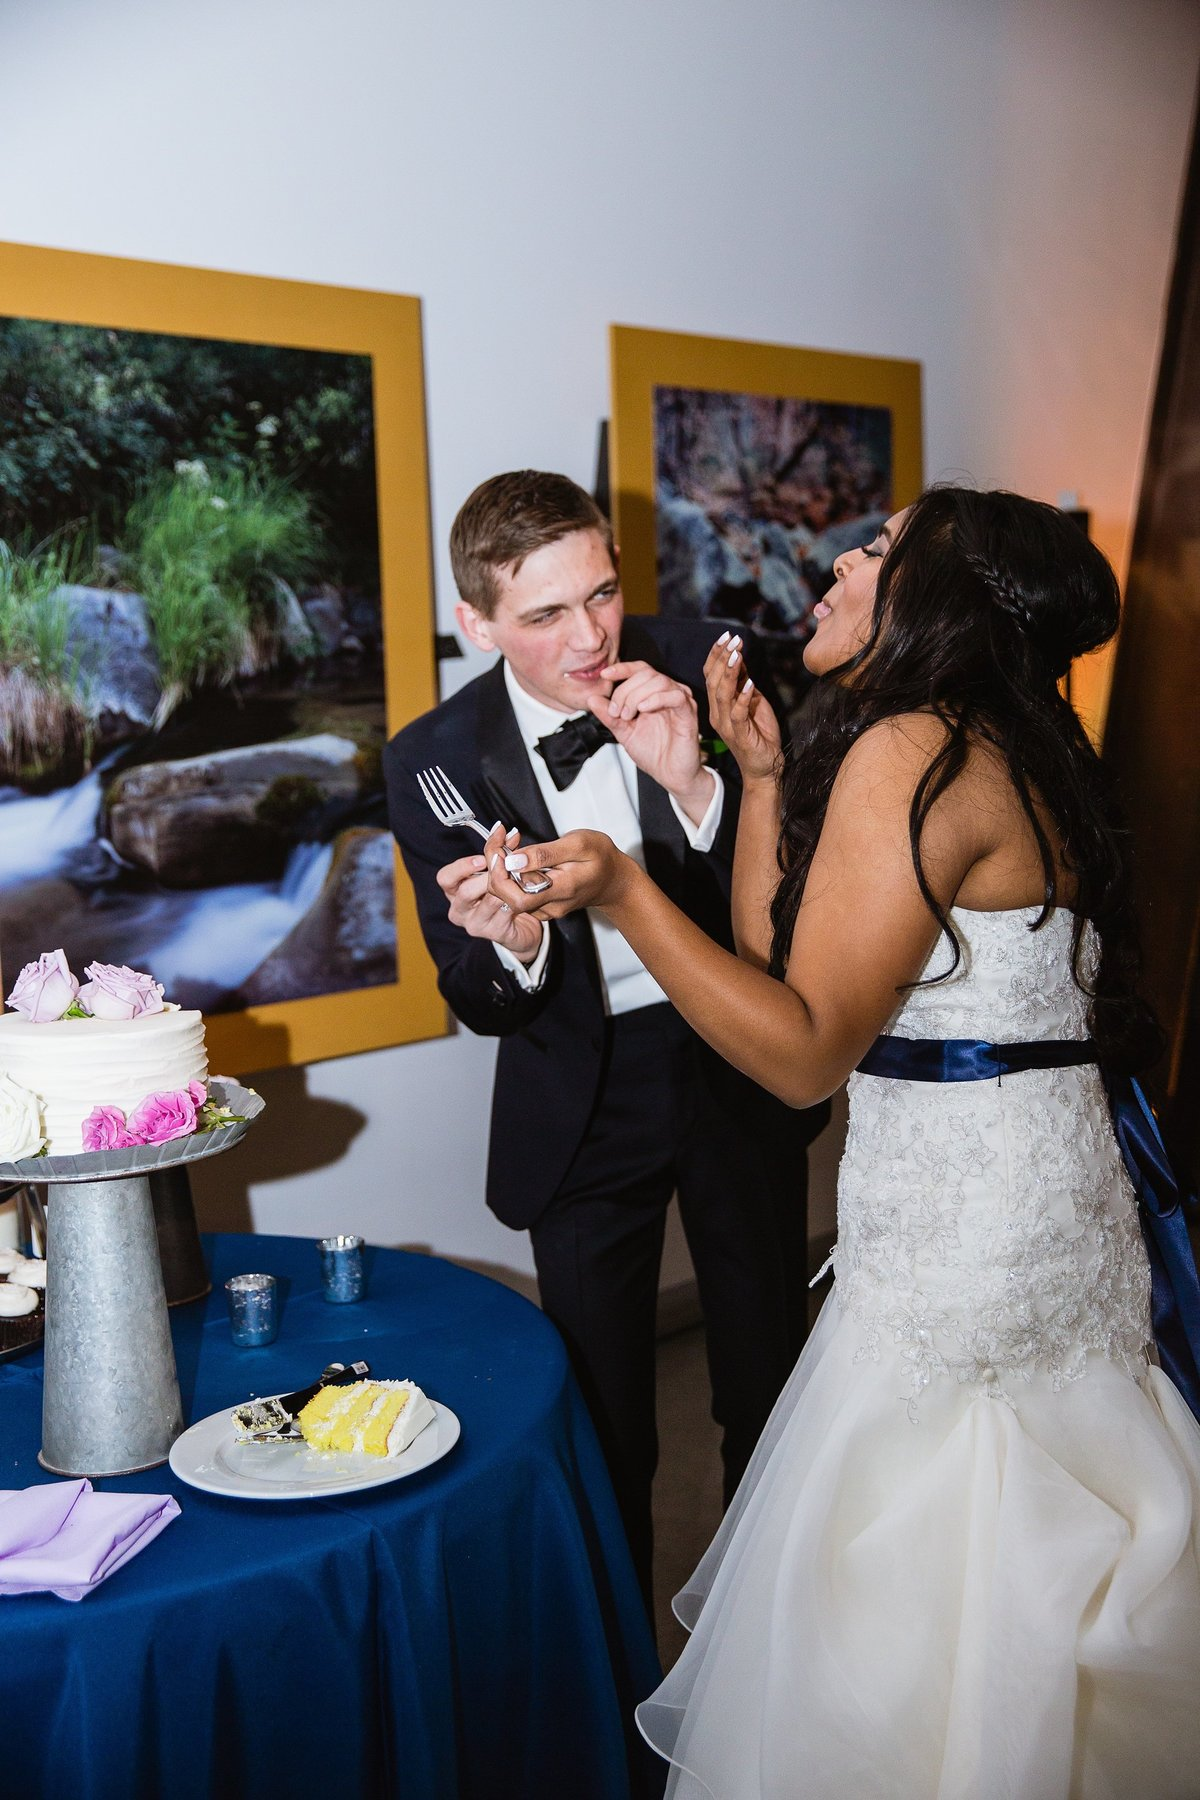 Bride and groom cutting the cake at their wedding reception by Phoenix wedding photographer PMA Photography.